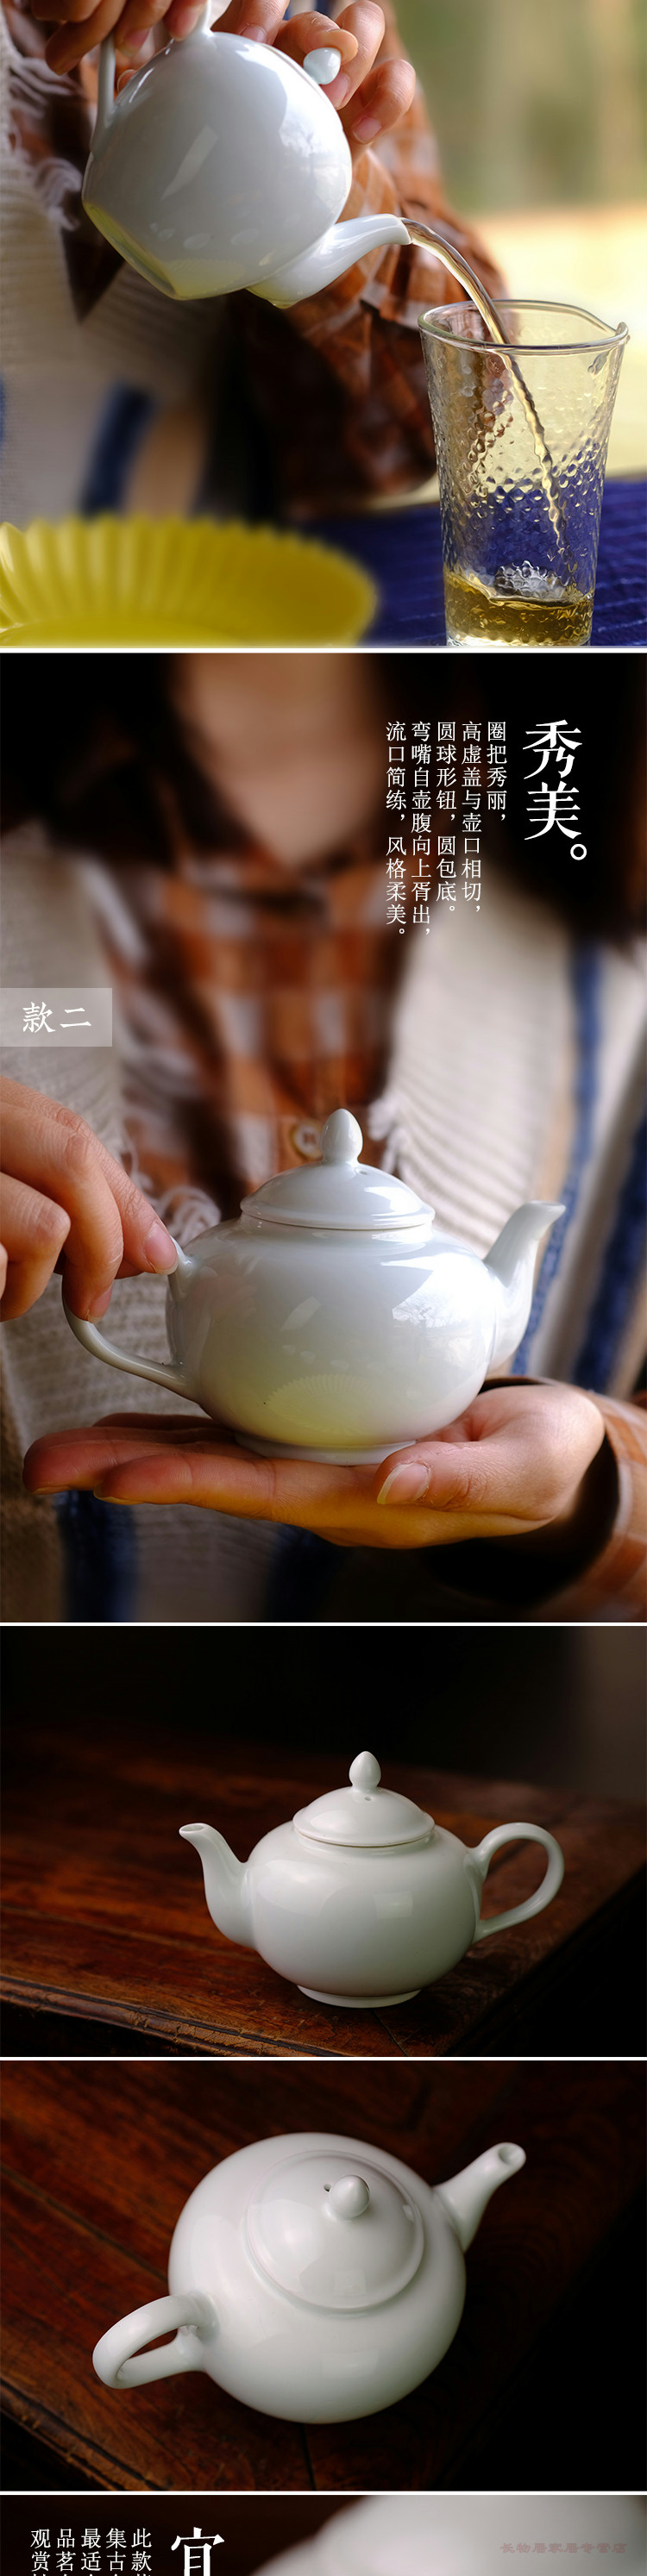 Offered home - cooked ju long up system implement green teapot jingdezhen restoring ancient ways is pure manual craft archaize ceramic tea tea set